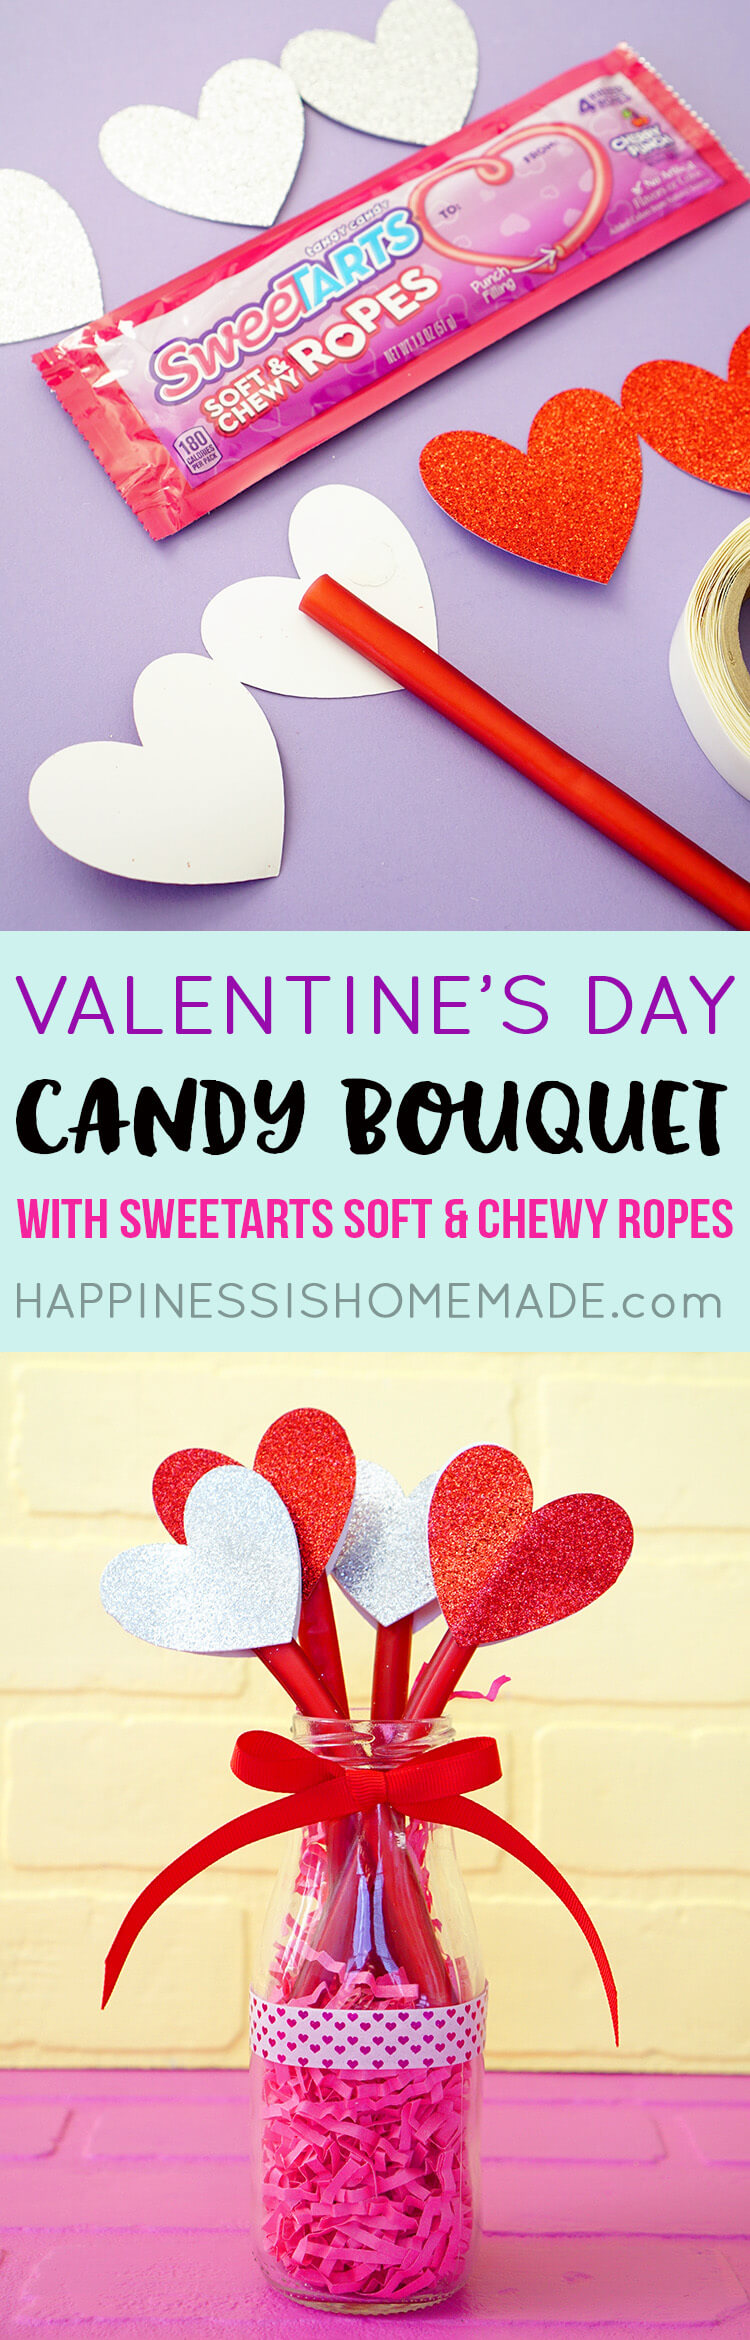 SweeTART Rope Candy Heart Bouquet is an Easy Valentine's Day Gift Idea